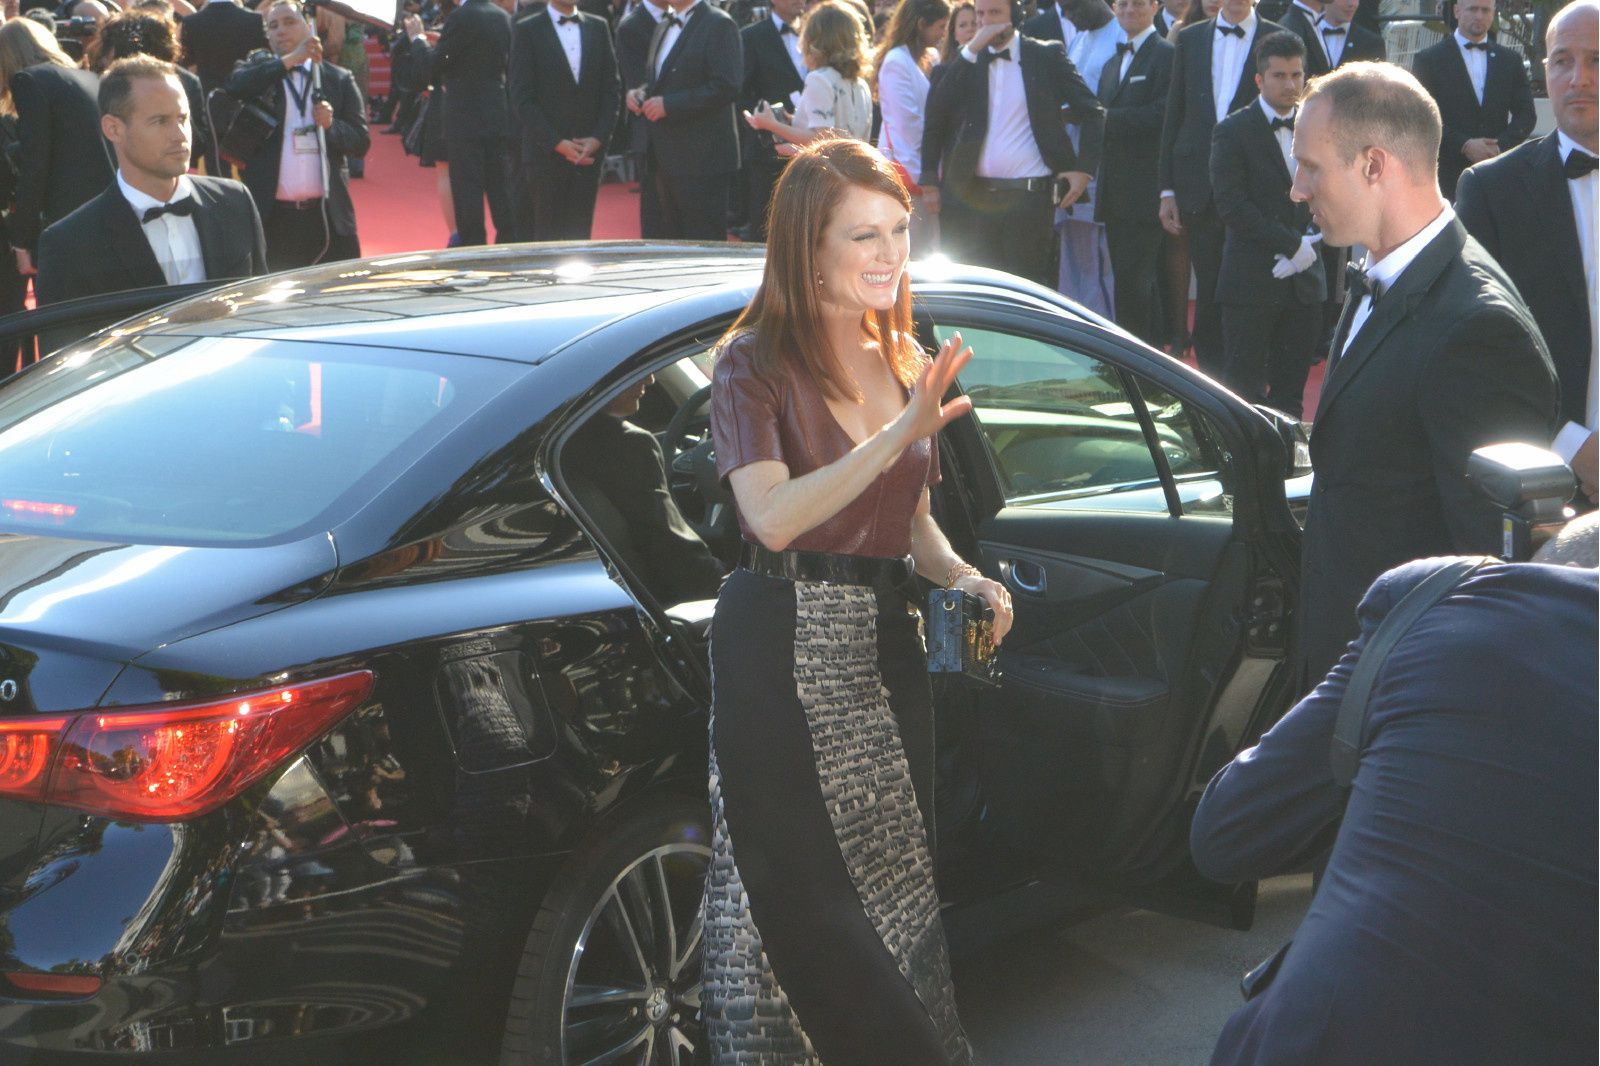 Julianne Moore actrice americo britanique trés applaudie